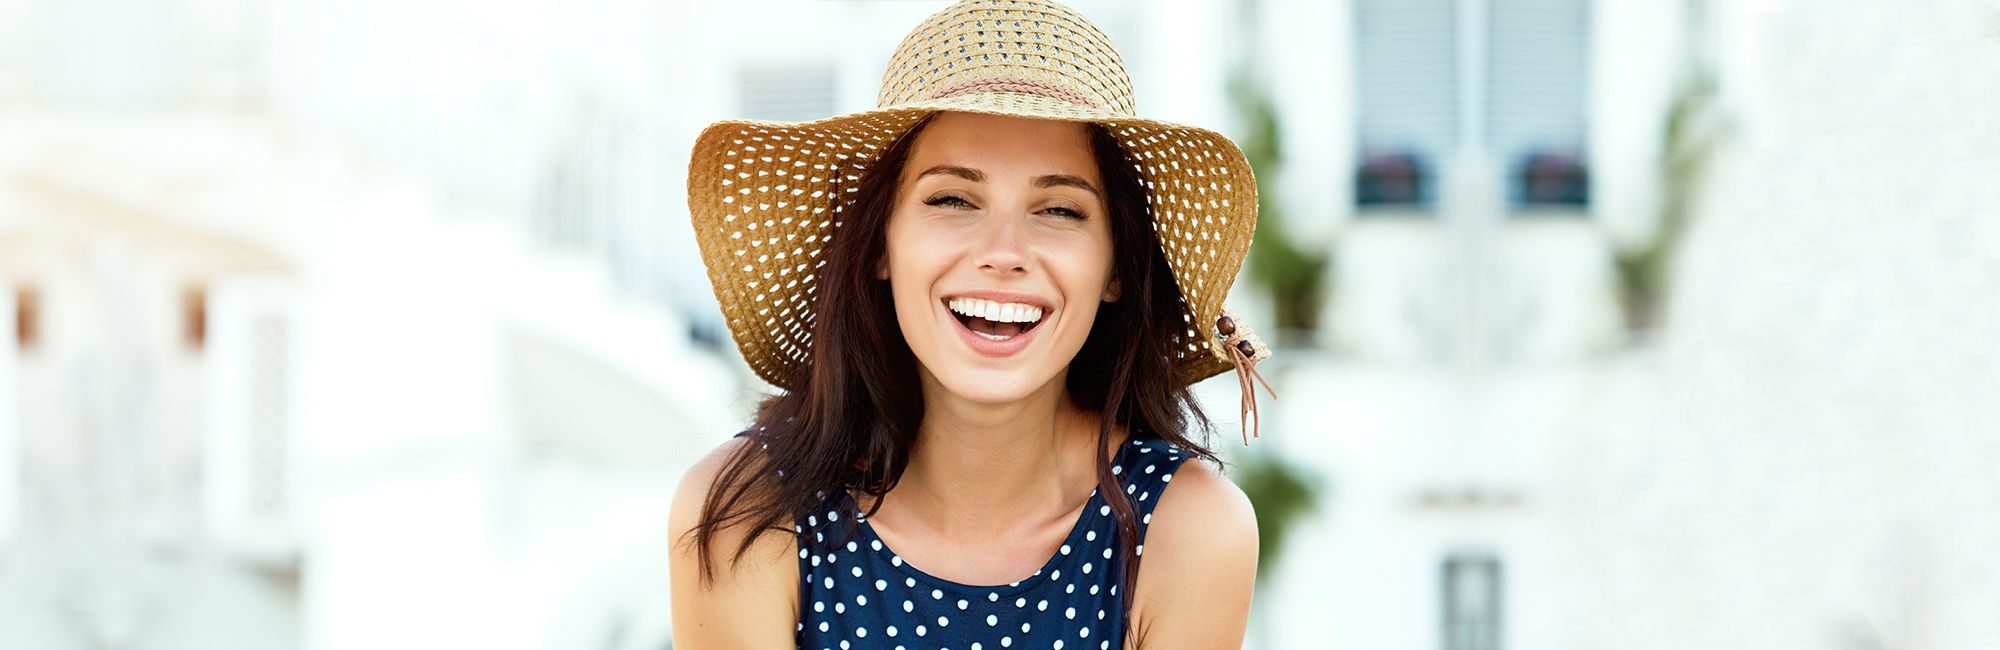 Smiling woman in a sunhat